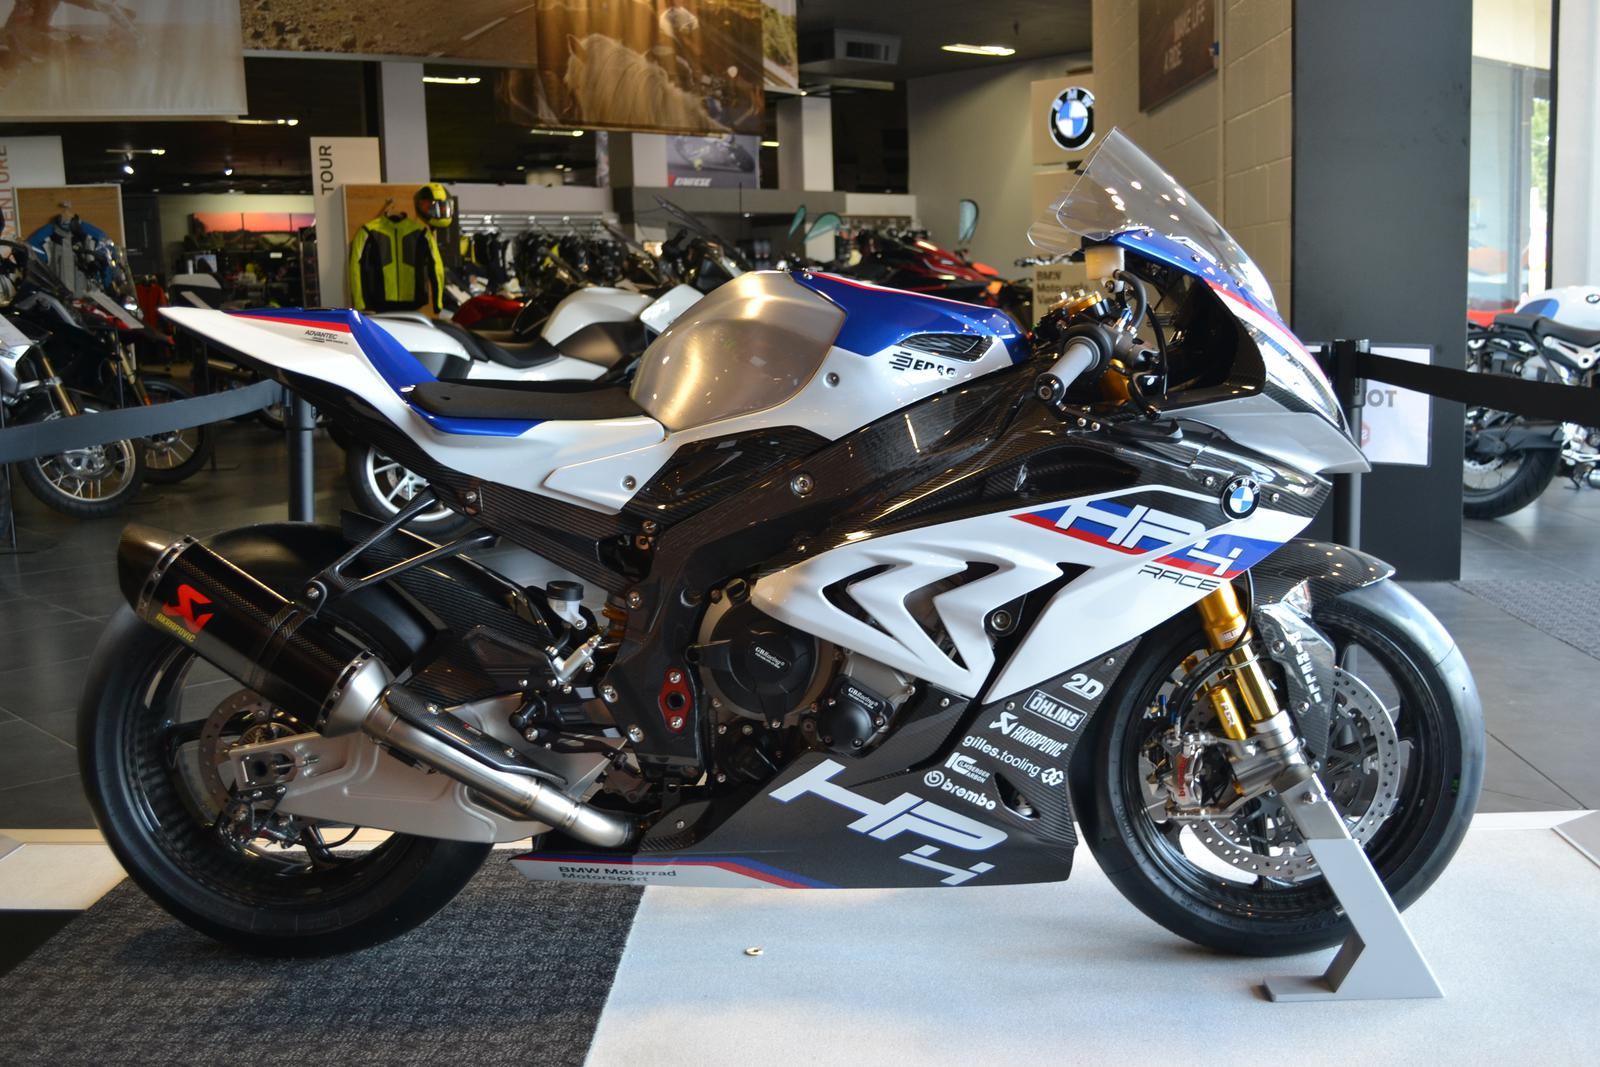 2018 Bmw Hp4 Race For Sale In Vancouver Wa Pro Caliber Vancouver